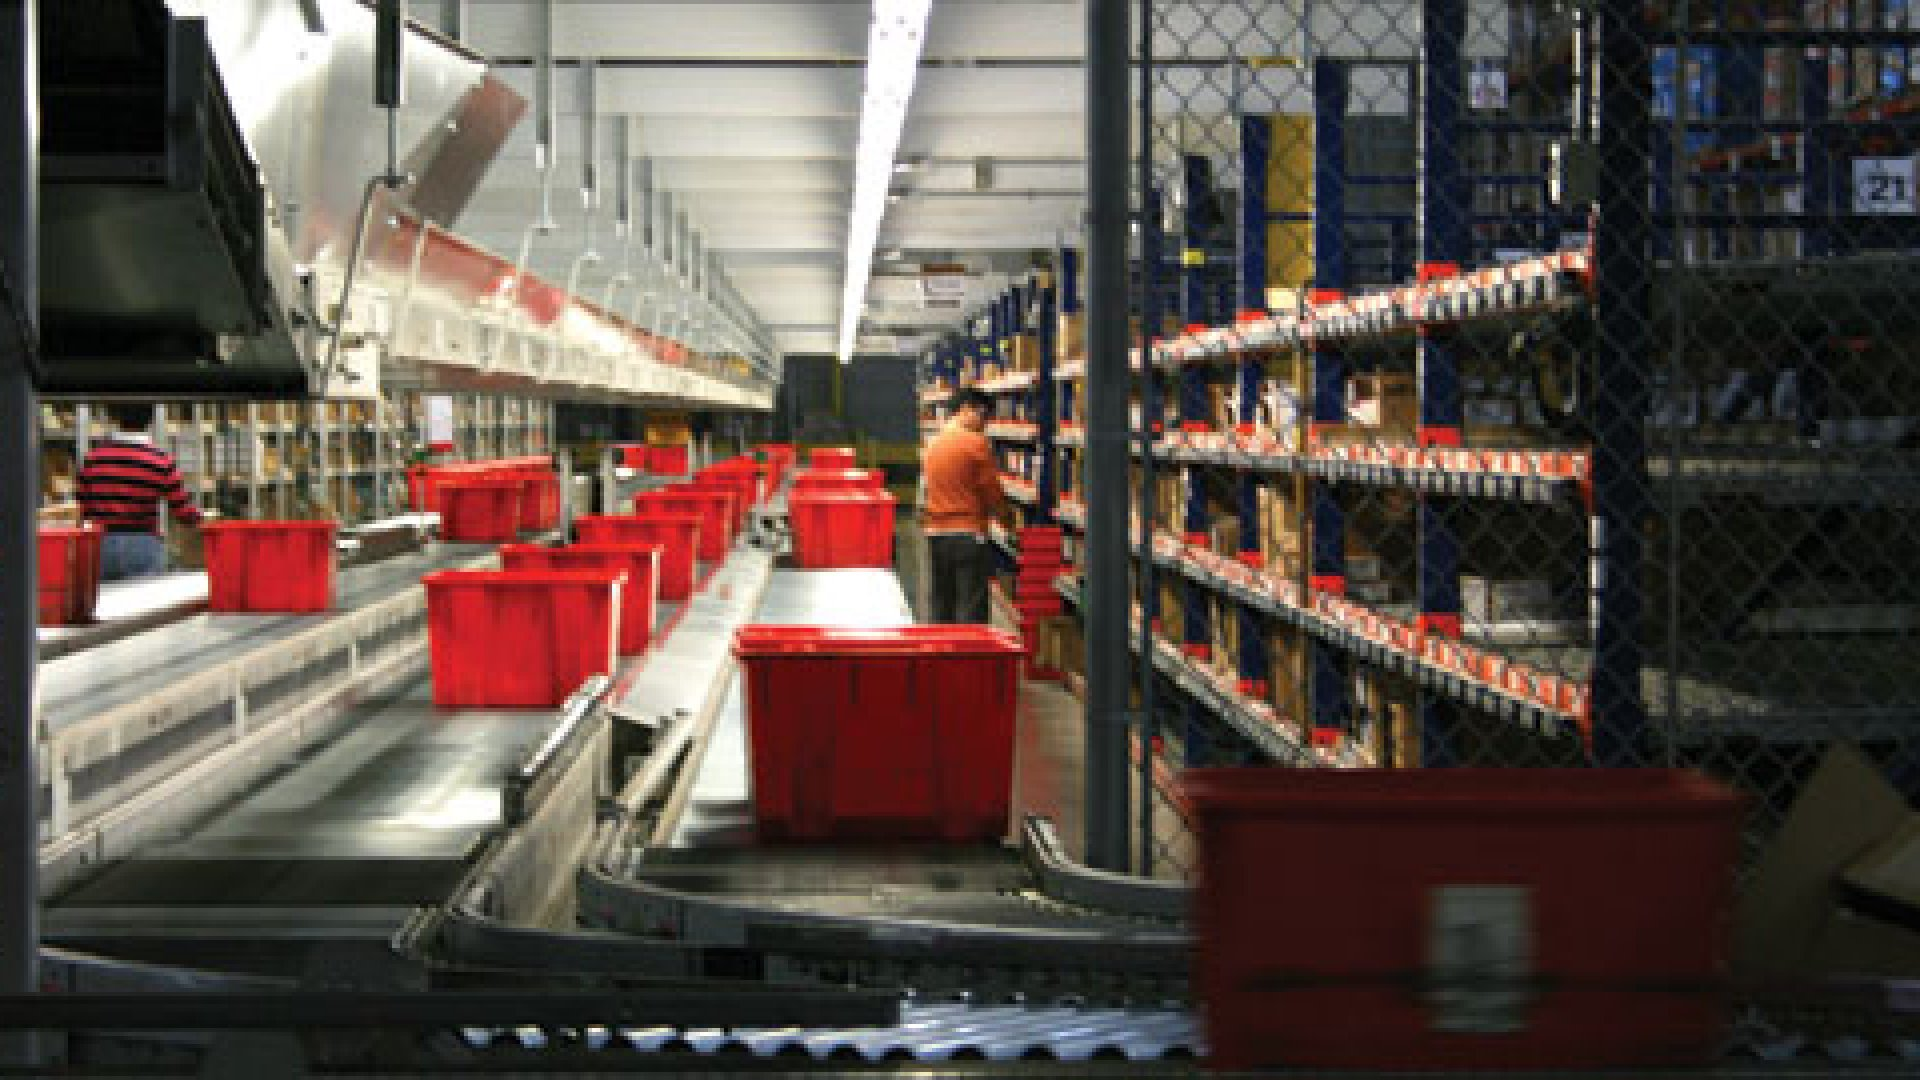 <b>EGG CRATES:</b> The online retailer Newegg.com hopes to keep its New Jersey distribution center humming all month long, not just on Cyber Monday.